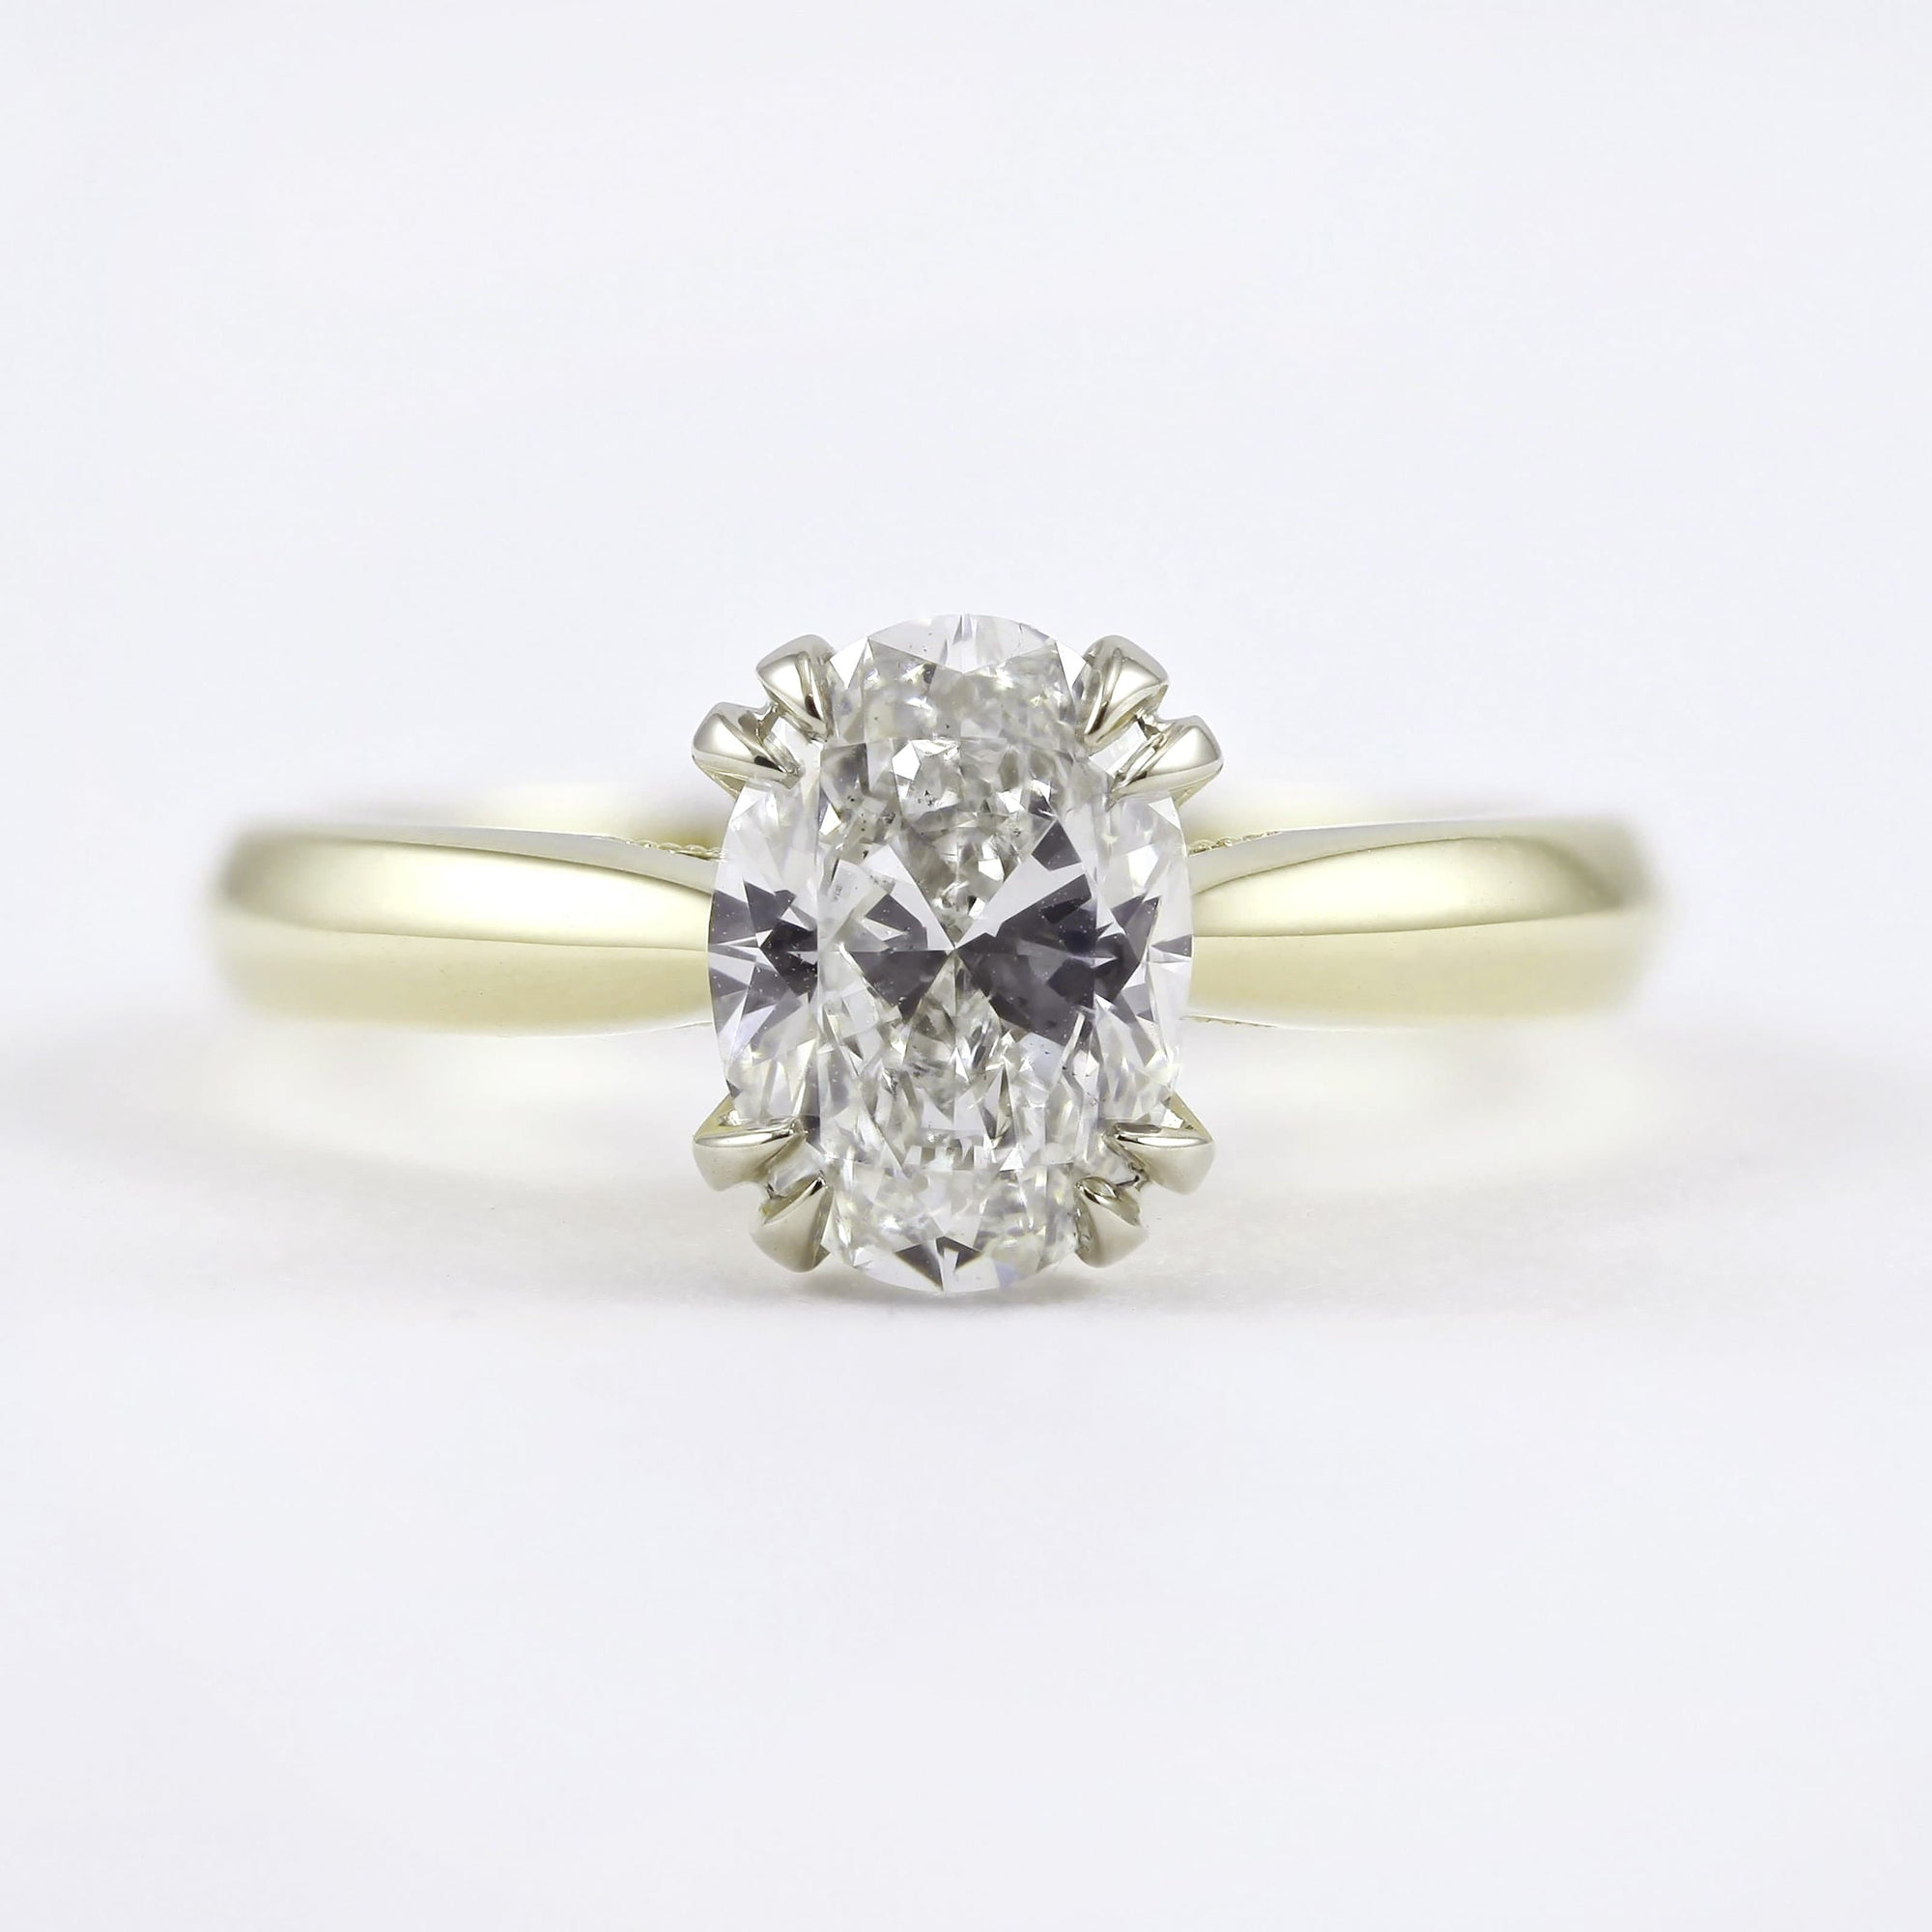 18K Yellow Gold 4-Double Prong Flush-Fit Diamond Ring